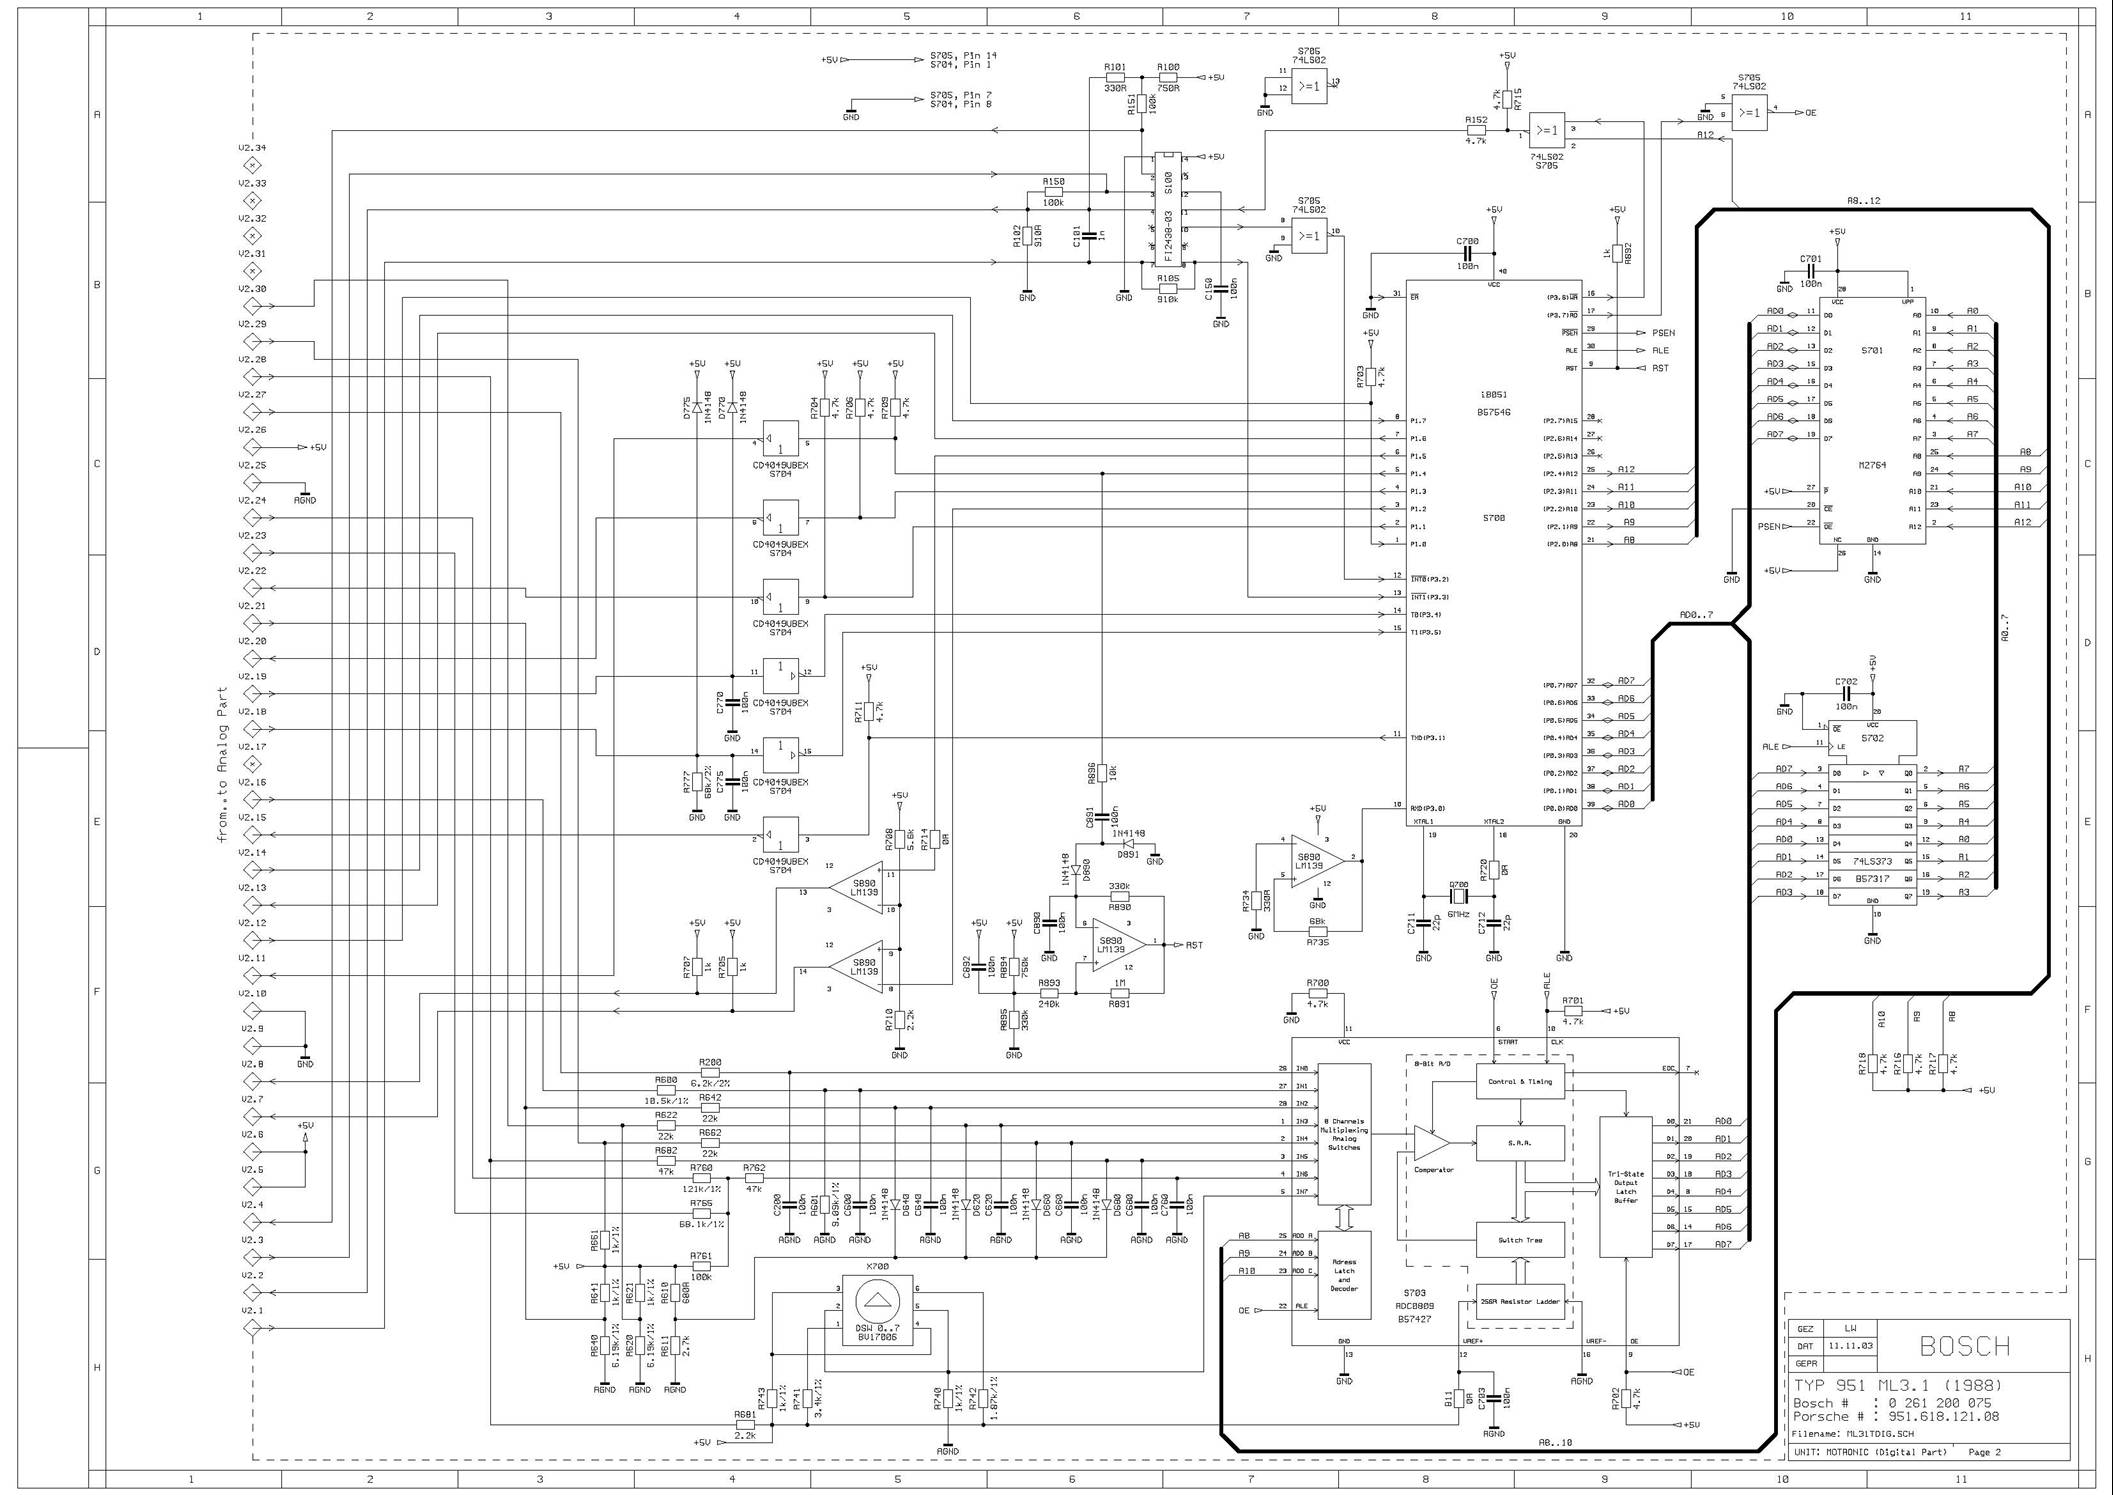 944tdme b shop wiring diagram cart wiring diagram \u2022 wiring diagrams j Servo Motor Wiring Diagram at fashall.co